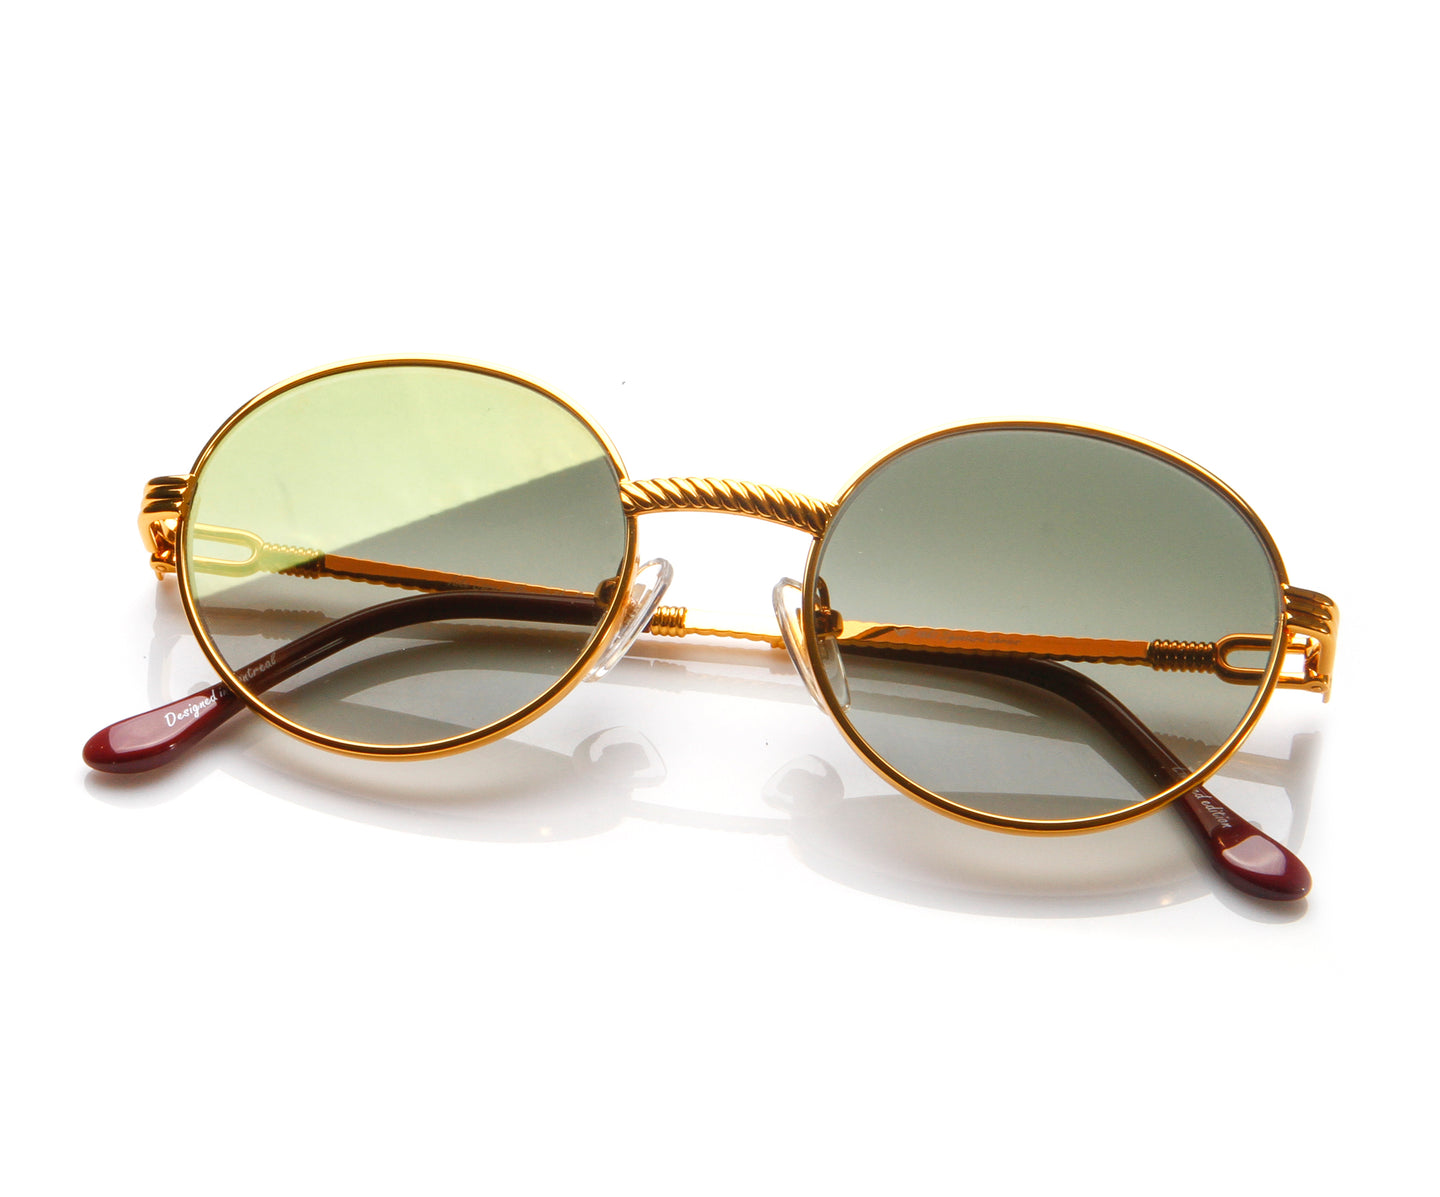 VF 508 18KT Gold (Moss Green), VF by Vintage Frames , glasses frames, eyeglasses online, eyeglass frames, mens glasses, womens glasses, buy glasses online, designer eyeglasses, vintage sunglasses, retro sunglasses, vintage glasses, sunglass, eyeglass, glasses, lens, vintage frames company, vf